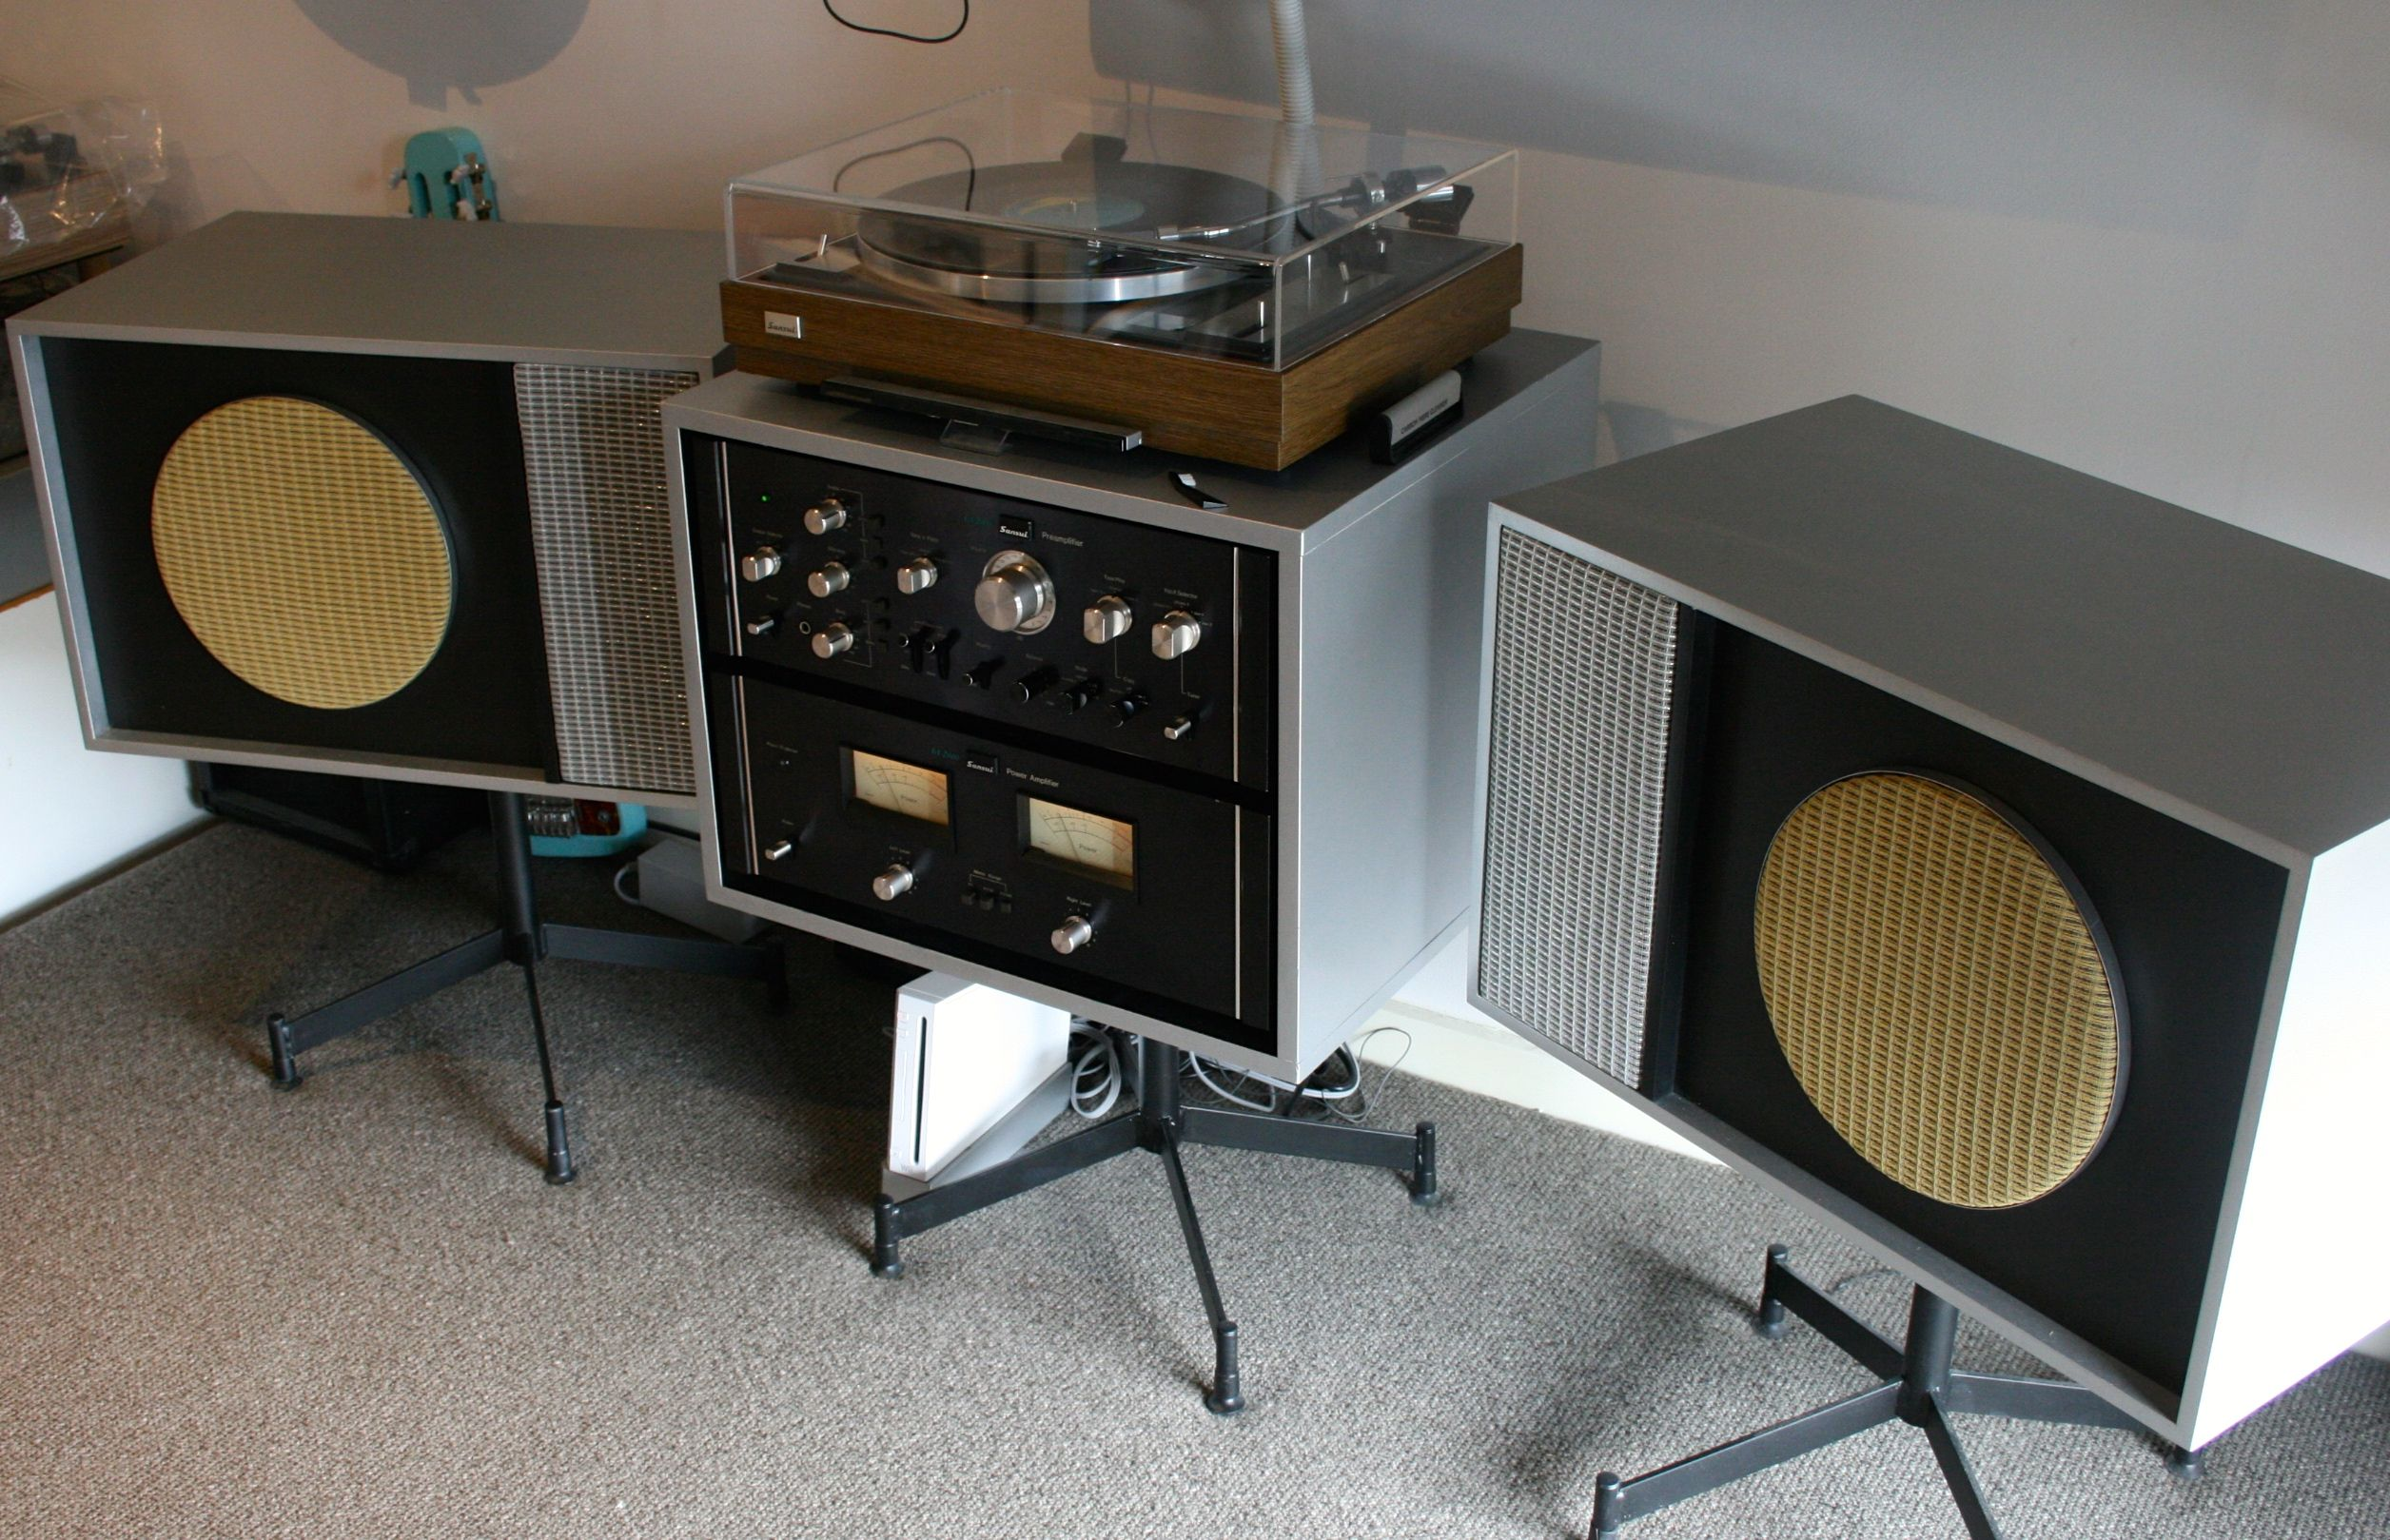 Just finished this DIY project speakers based on Charles Eames Design 1950's, with Sansui power Amp BA2000/ Pre Amp CA2000. Turntable Sansui FR-1080 new dust cover and wood grain vinyl wrap. Speakers swivel on bases